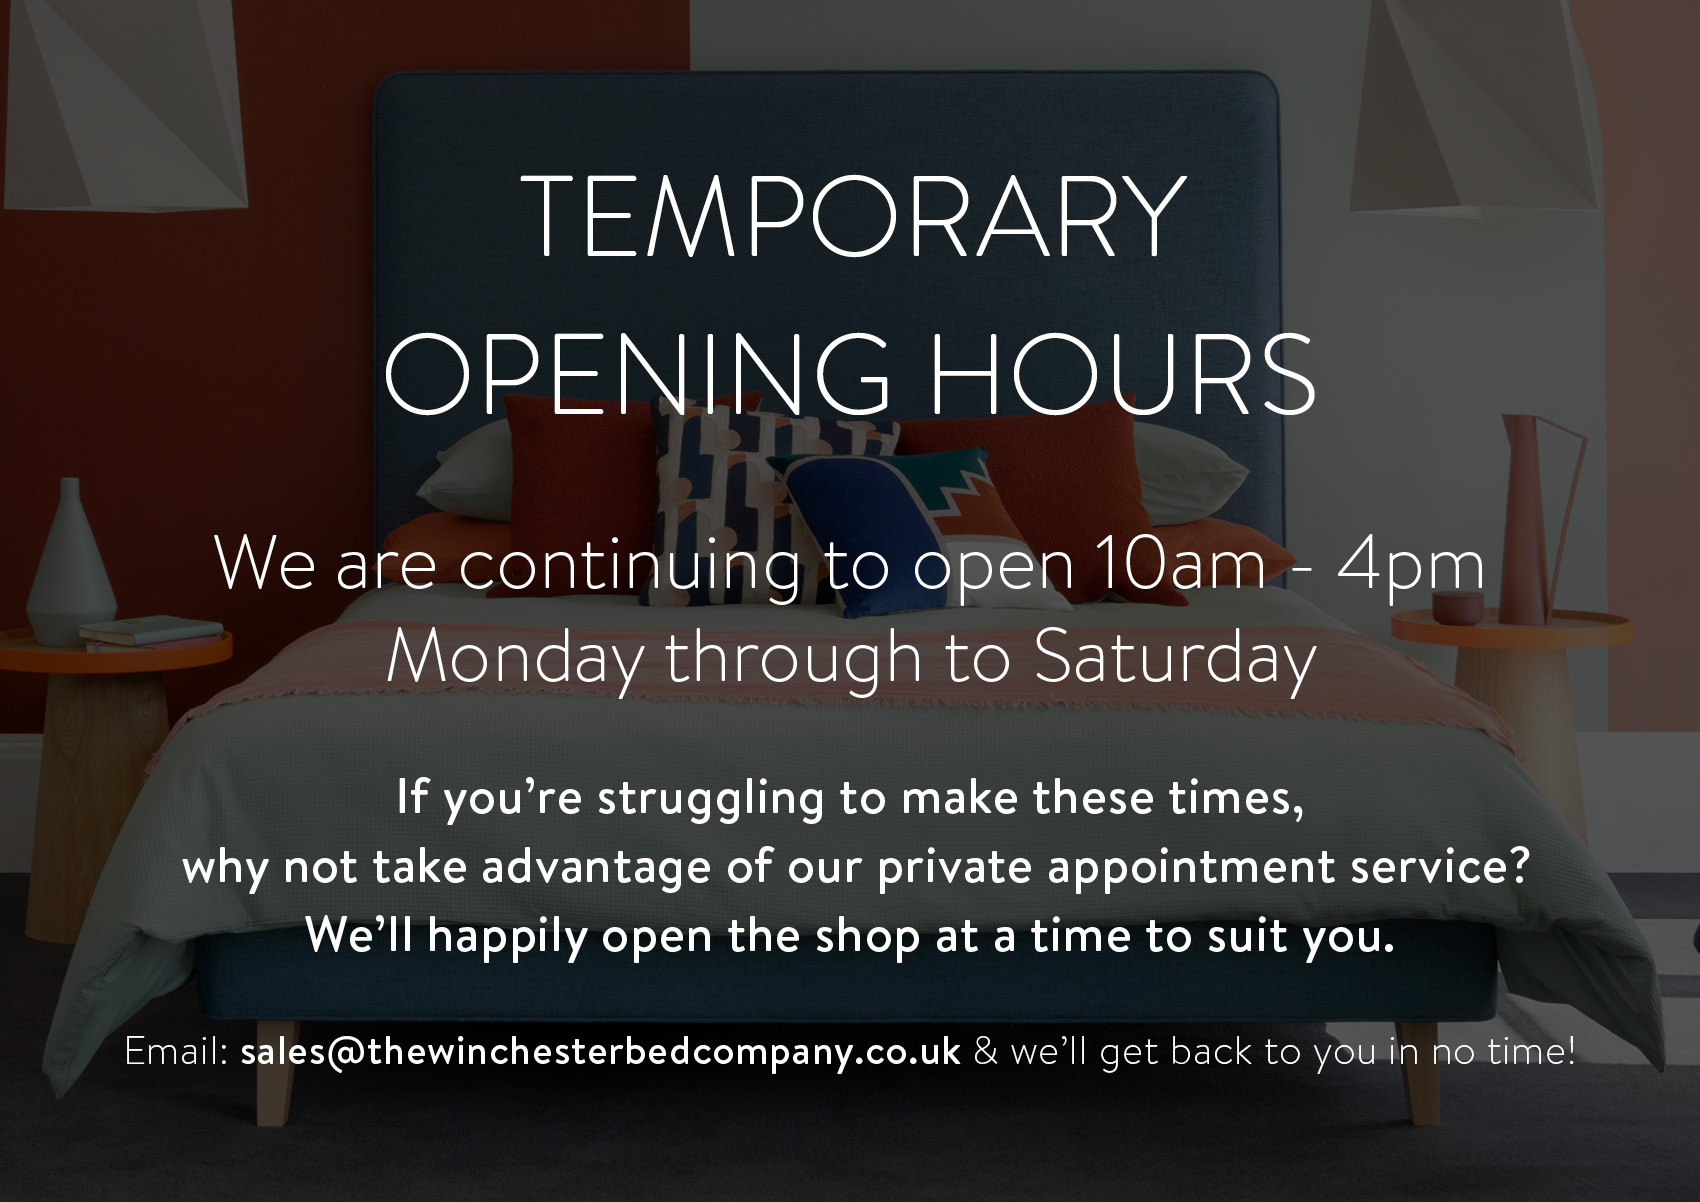 TEMPORARY OPENING HOURS - We are continuing to open 10am - 4pm Monday through to Saturday. If you're struggling to make these times, why not take advantage of our private appointment service? We'll happily open the shop at a time to suit you. Email sales@thewinchesterbedcompany.co.uk & we'll get back to you in no time!